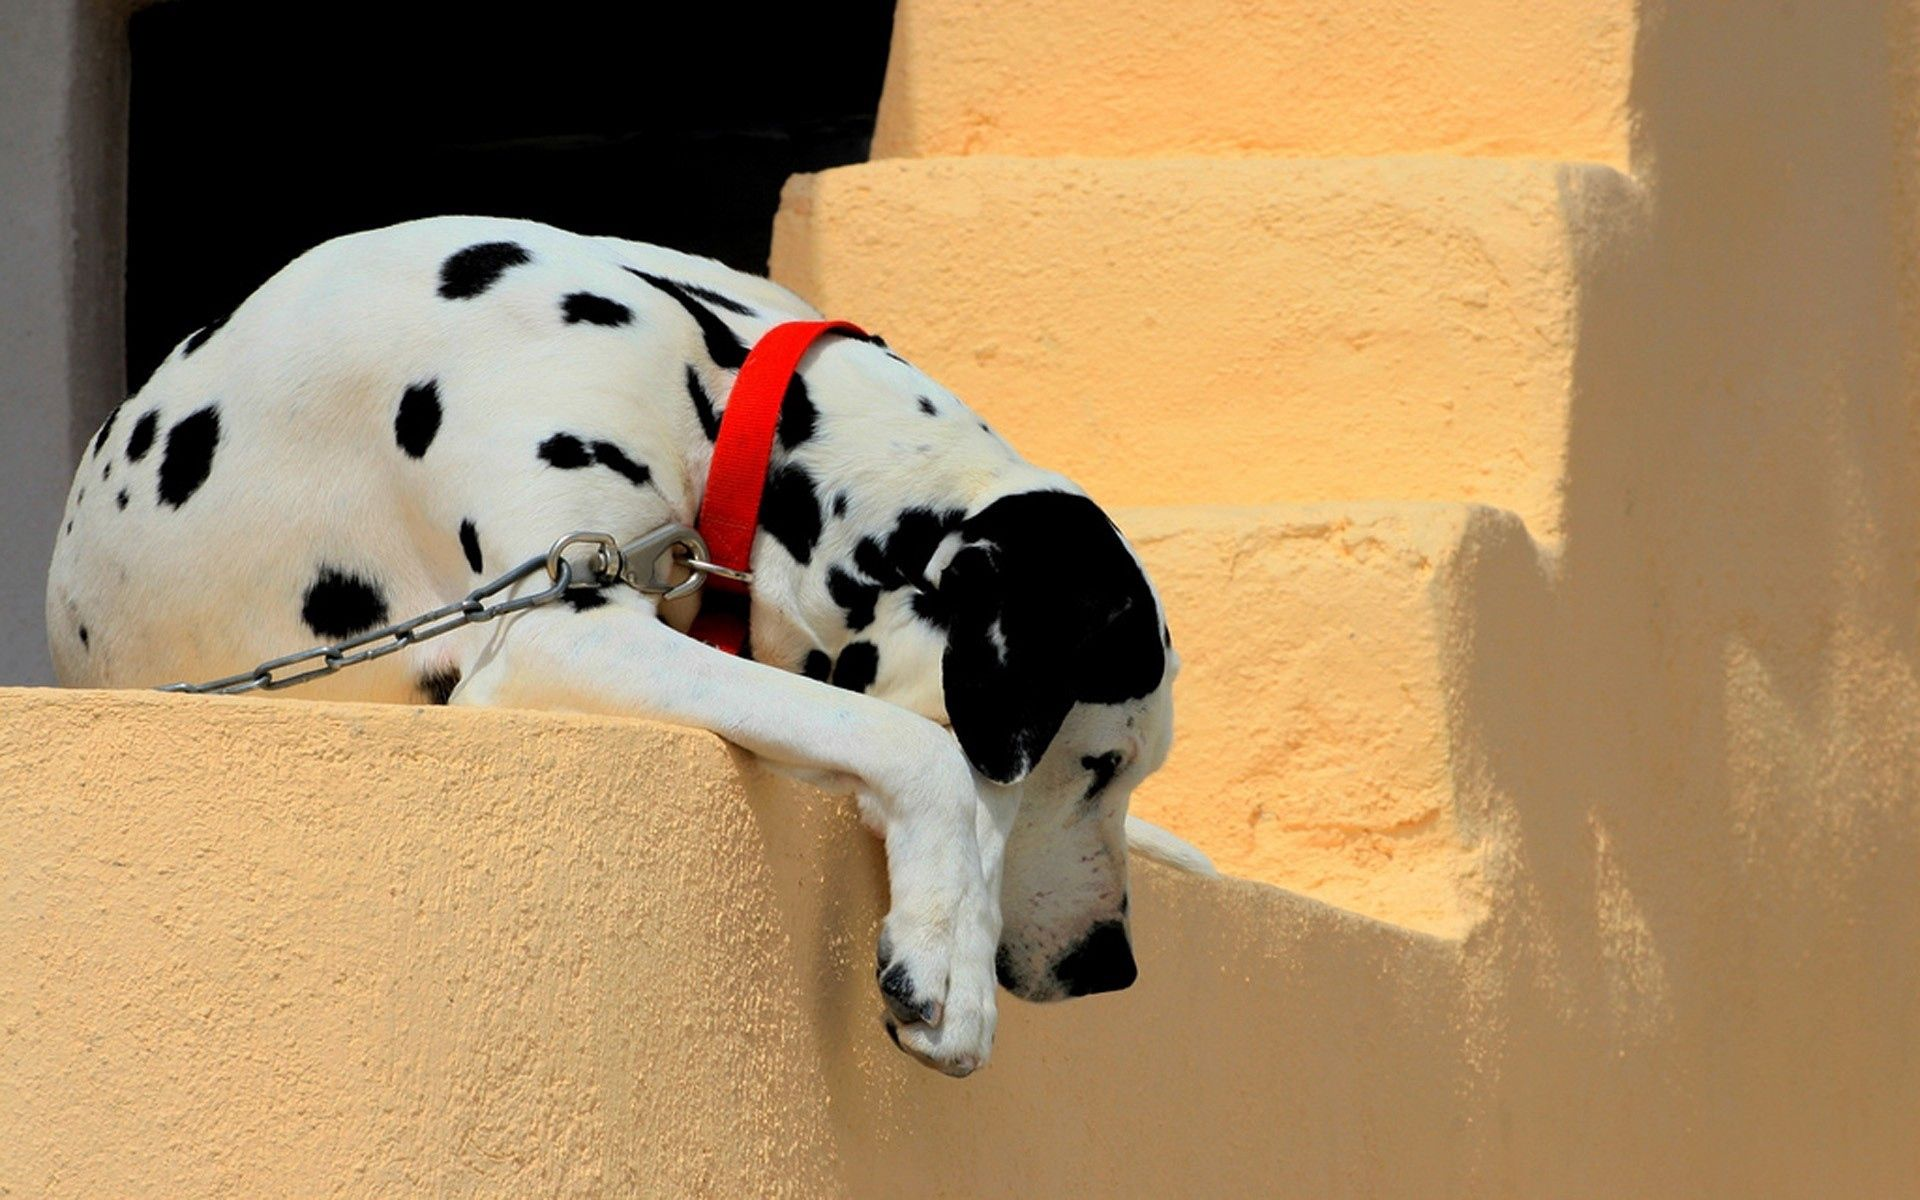 152497 download wallpaper Animals, Dalmatian, Dog, Collar, To Lie Down, Lie, Shadow, Stairs, Ladder screensavers and pictures for free